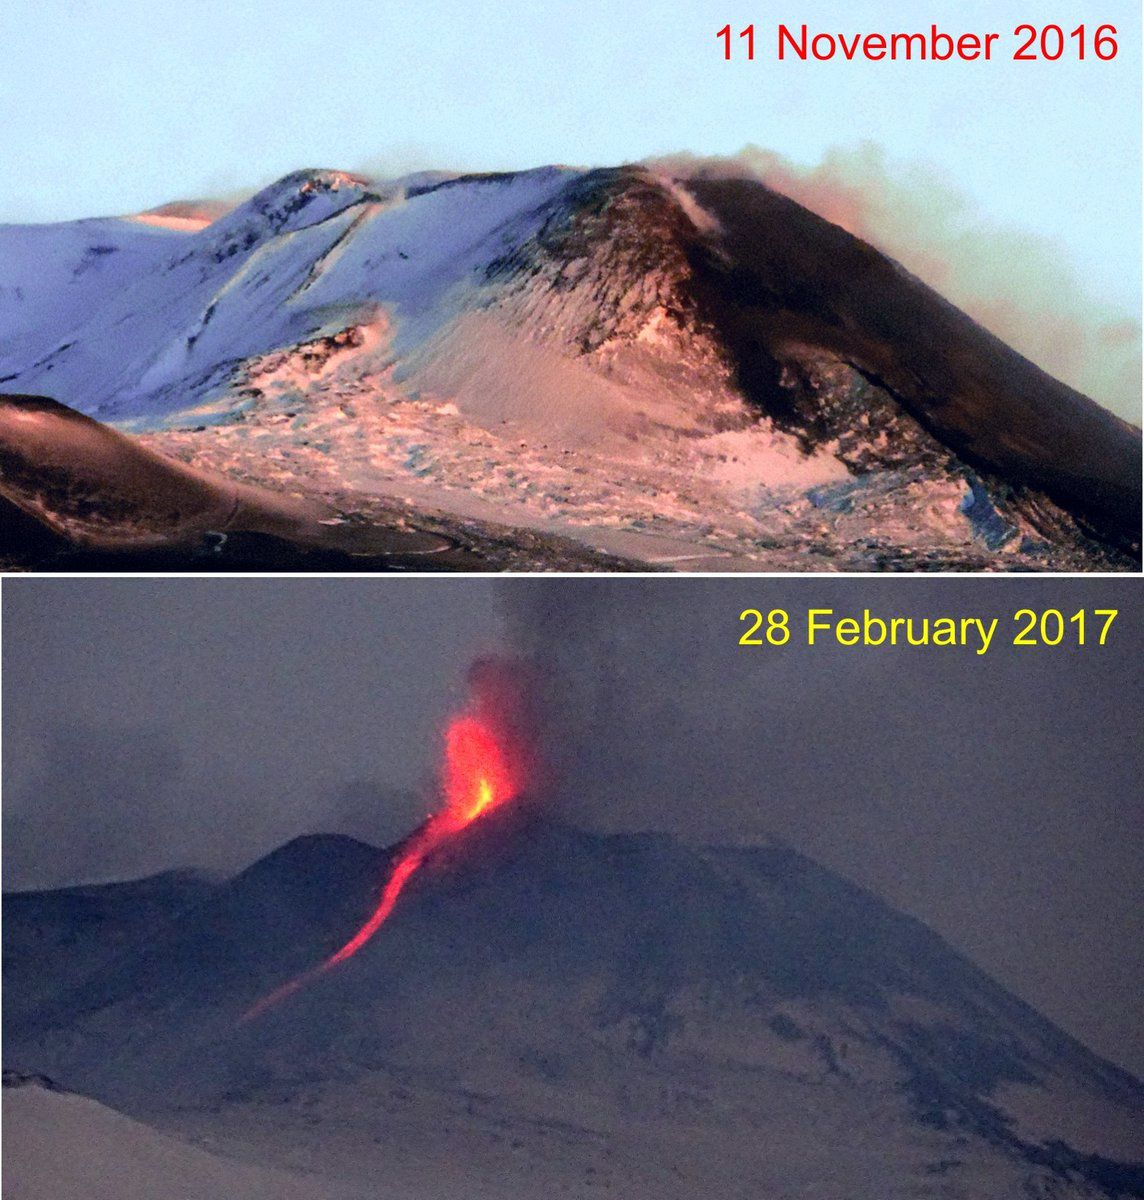 Etna - differences of morphology between 11.11.2016 and 28.02.2017 - doc. Boris Behncke